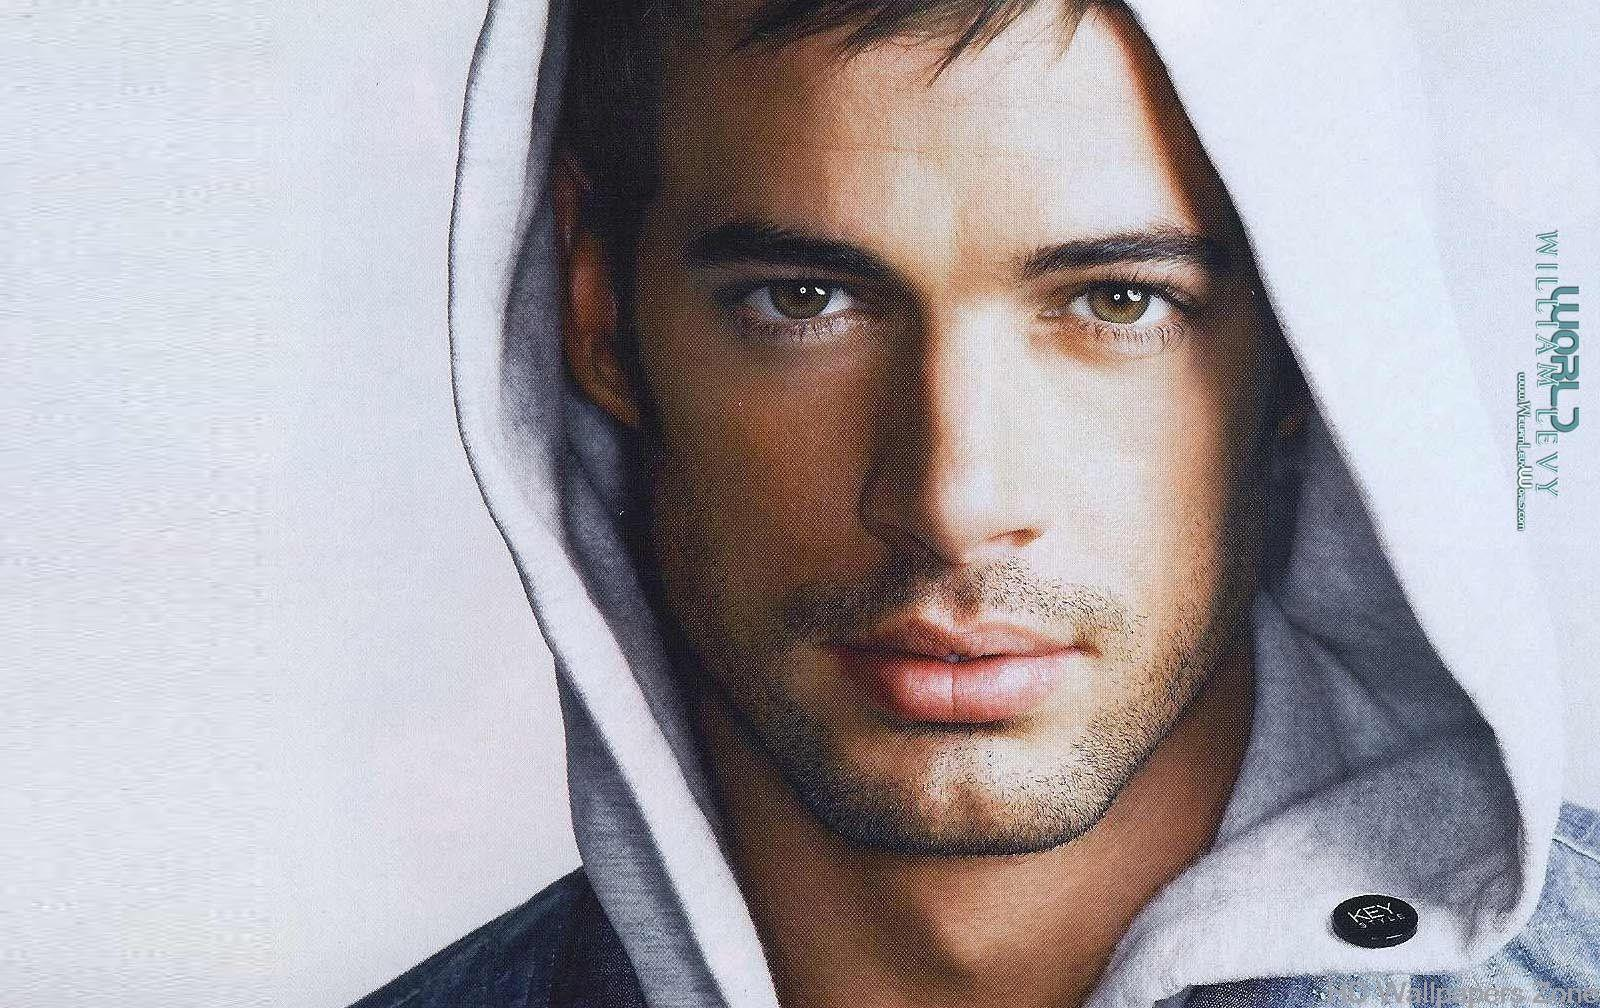 William Levy Wallpapers 1600x1008